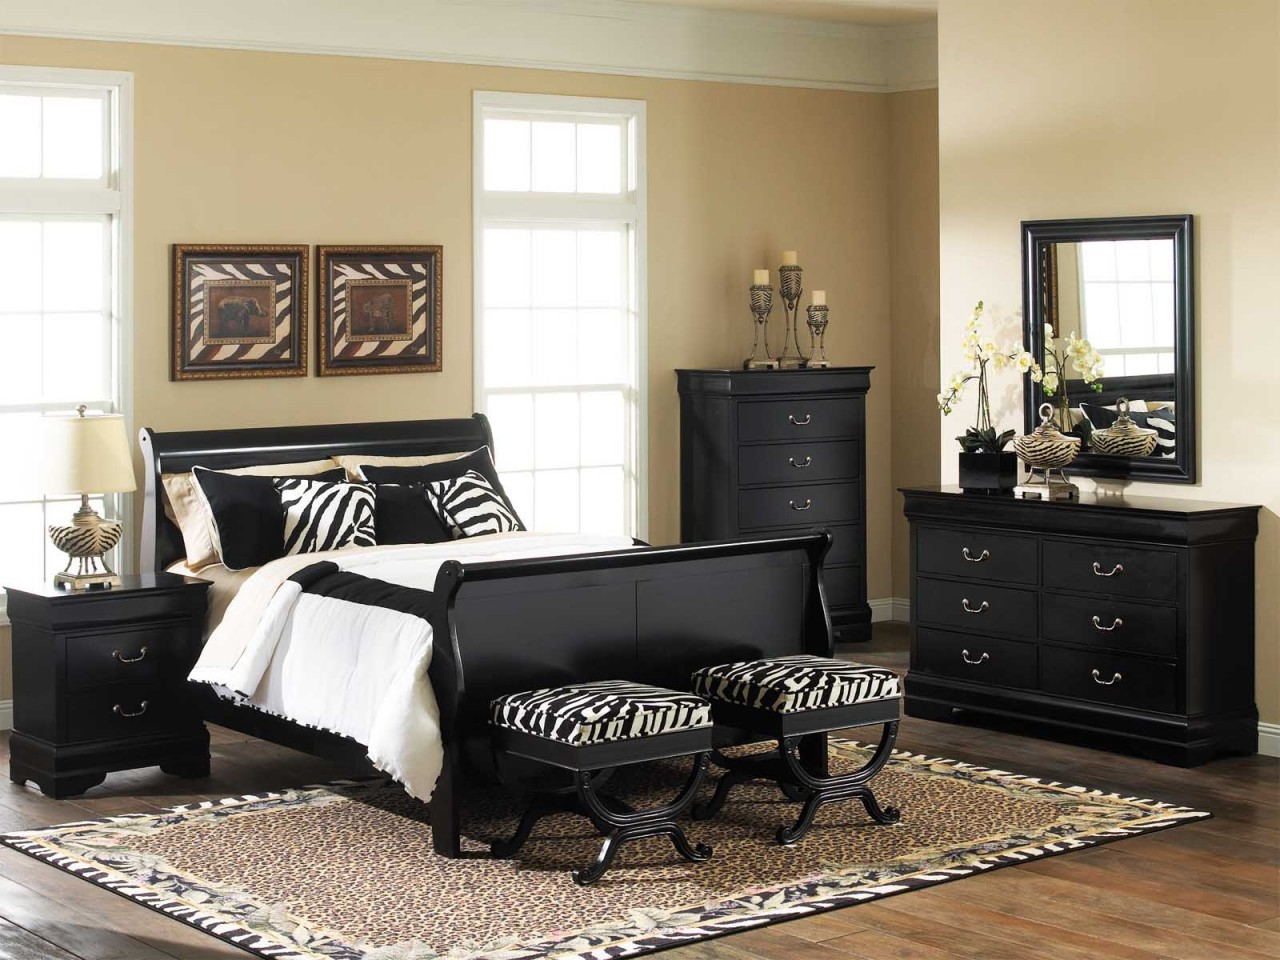 Black Bedroom Set Full Size Of Bedroom Furniture Sets King Modern Bedroom Sets Bedding Sets